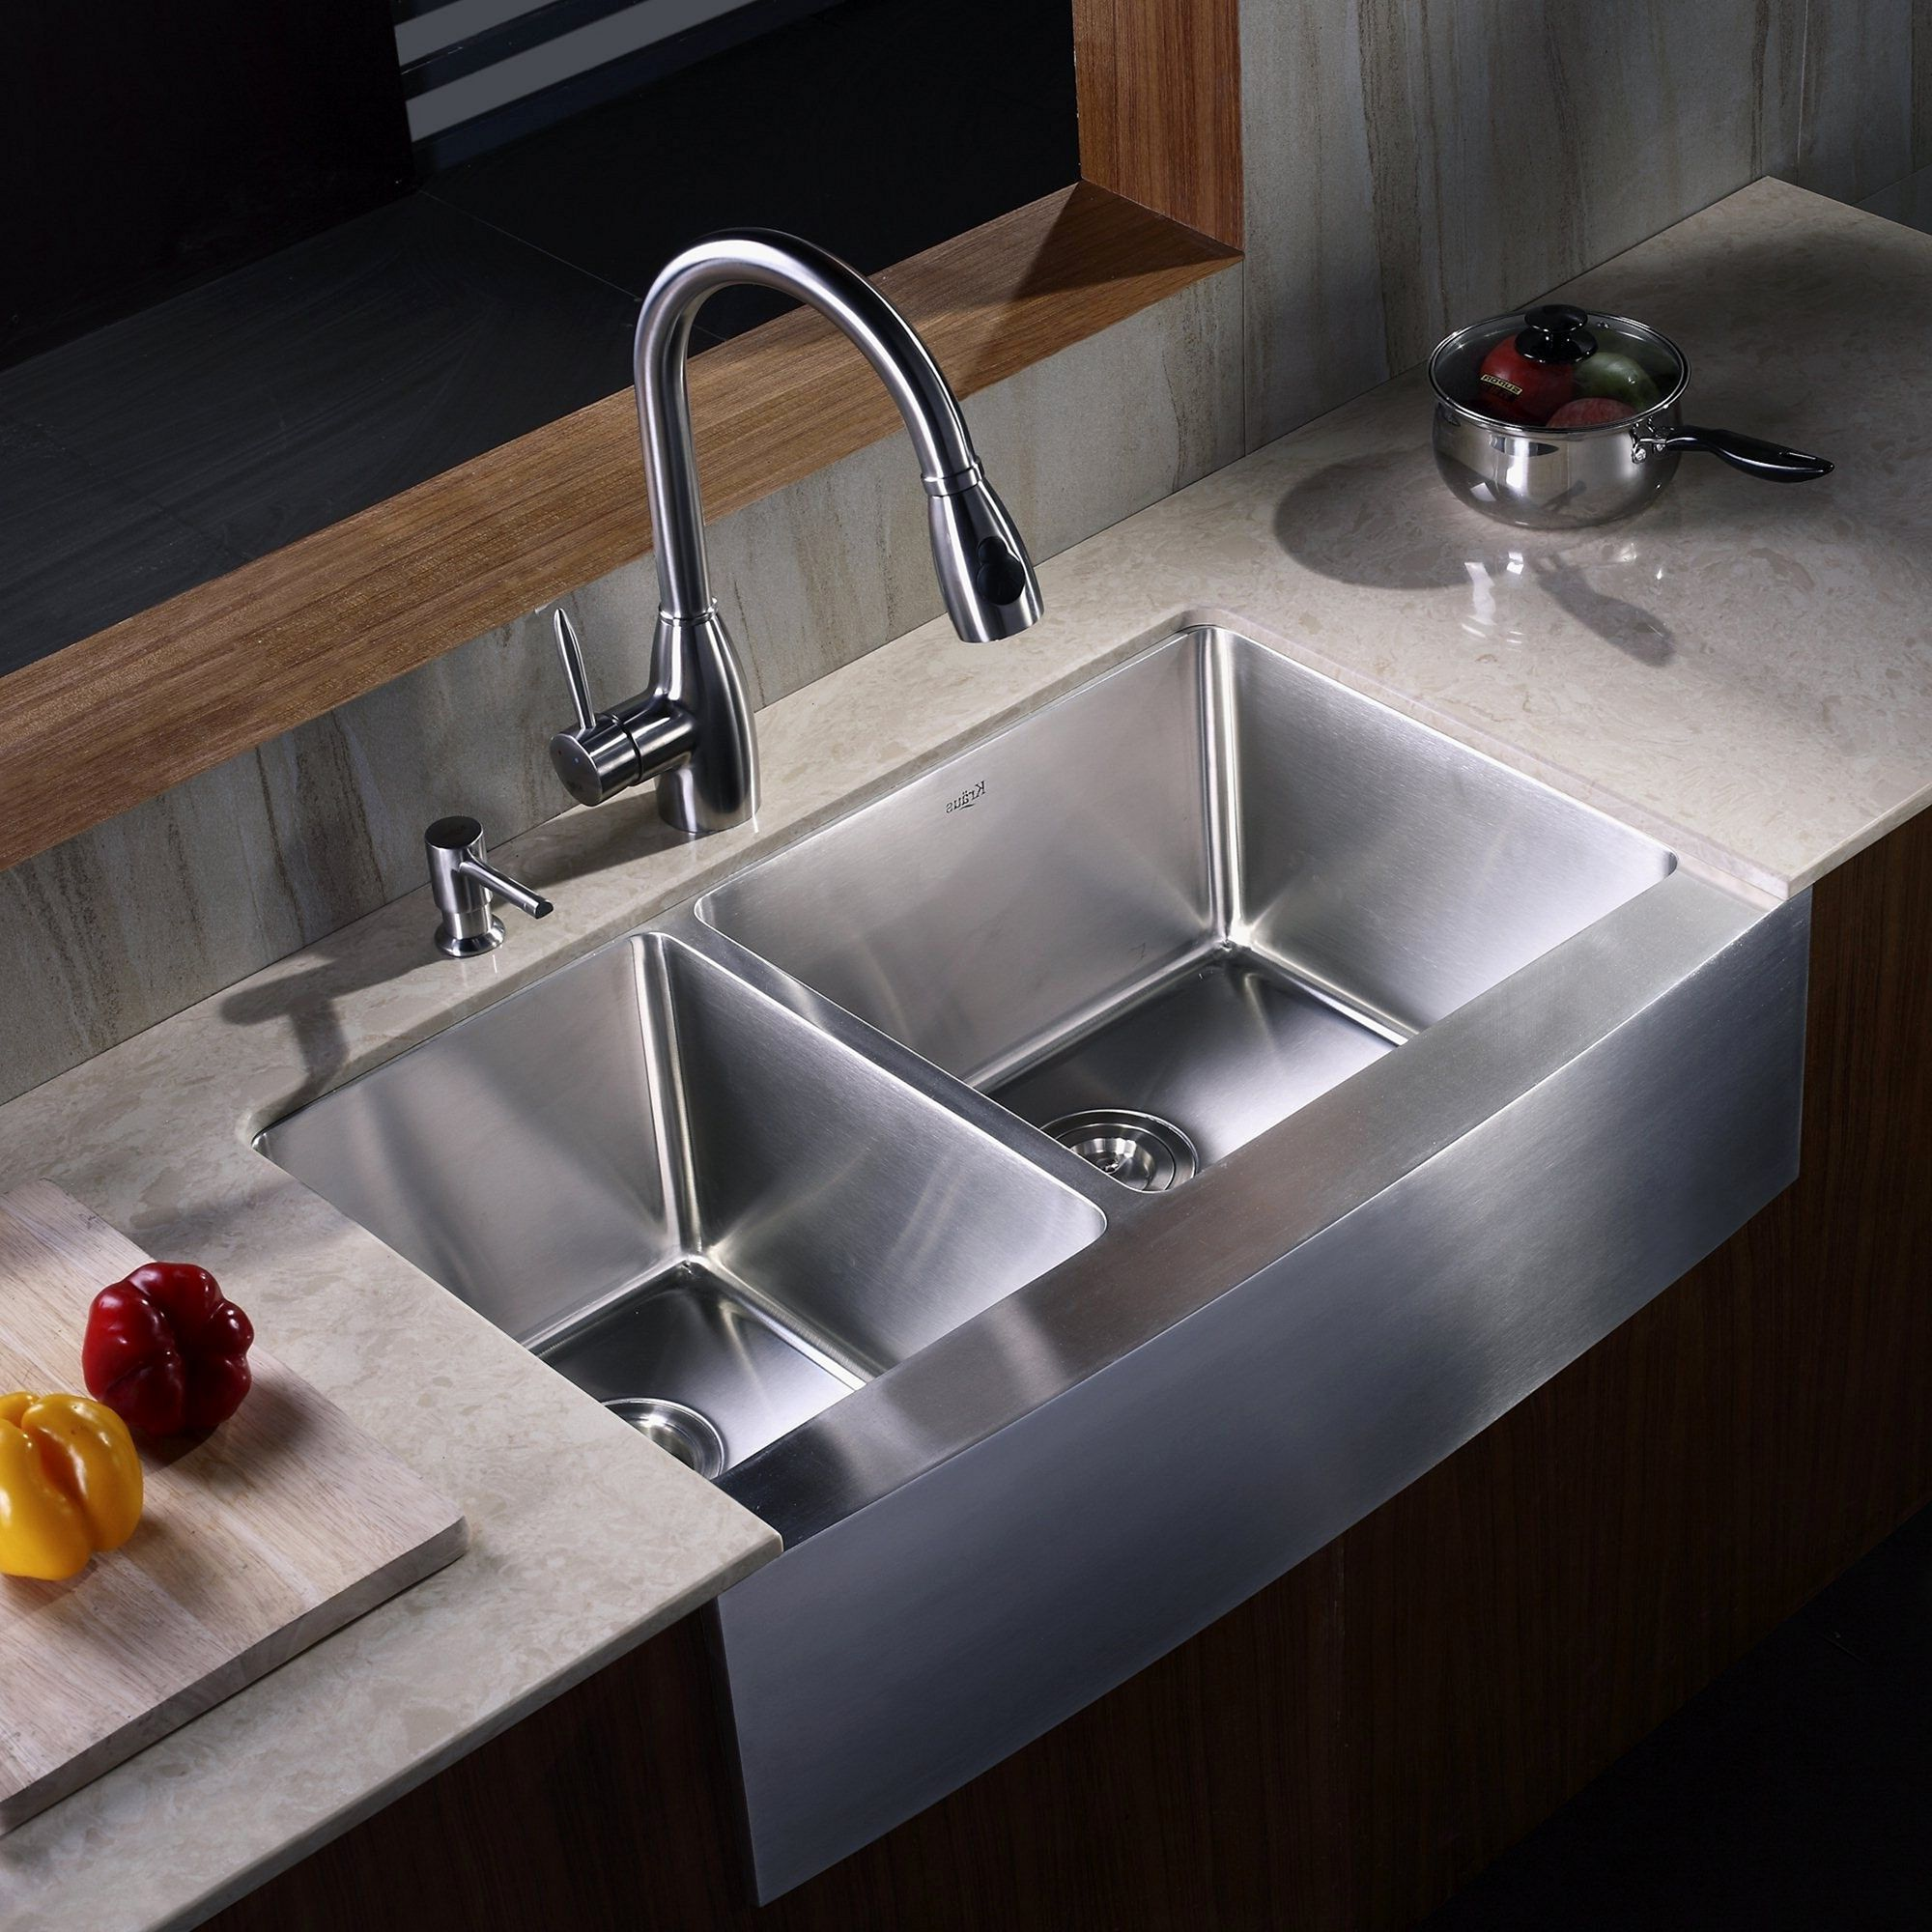 Rv Kitchen Sink Standard Size 23 Awesome Design Ideas For Preparing Your Vacation Breathtaking Https